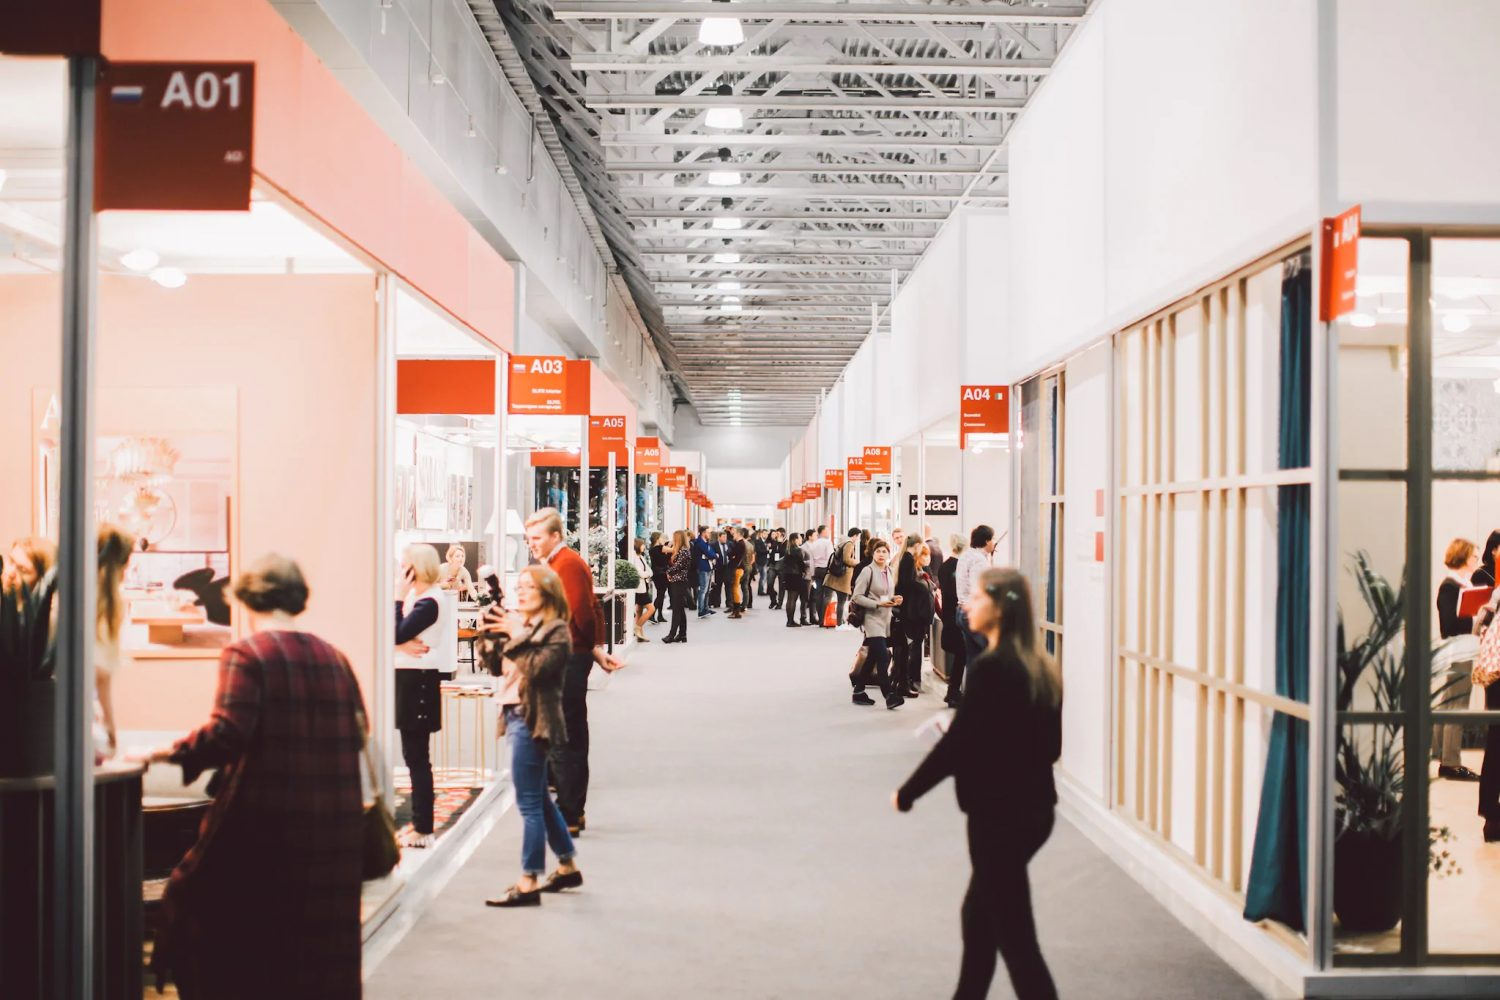 Salone Del Mobile.Moscow 2019 Event Guide salone del mobile.moscow 2019 Salone Del Mobile.Moscow 2019 Event Guide Salone Del Mobile Moscow 2019 Event Guide 2